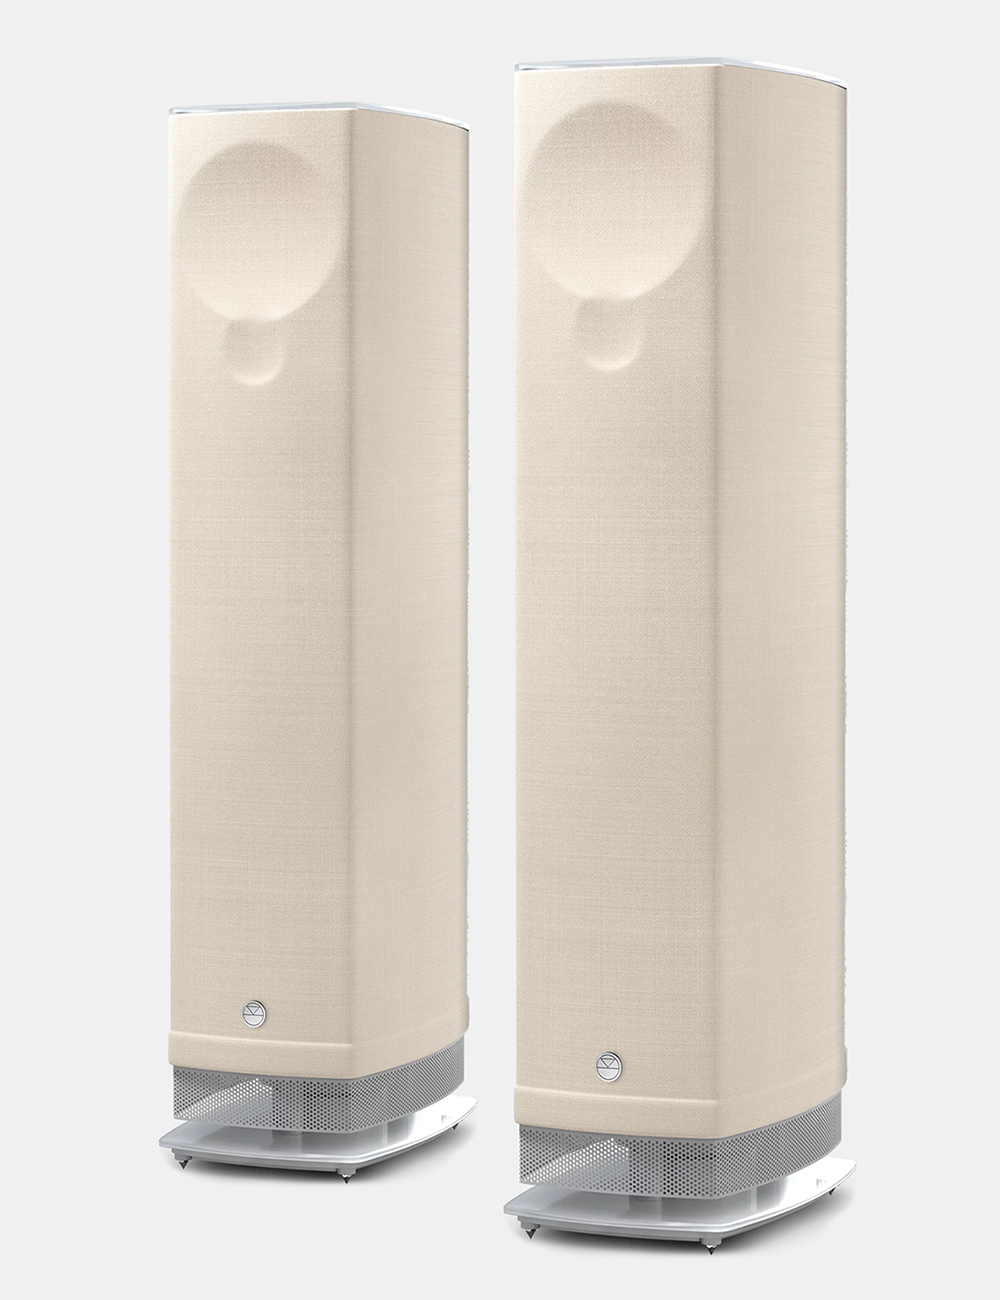 LINN Series 5 System Vanilla Speakers